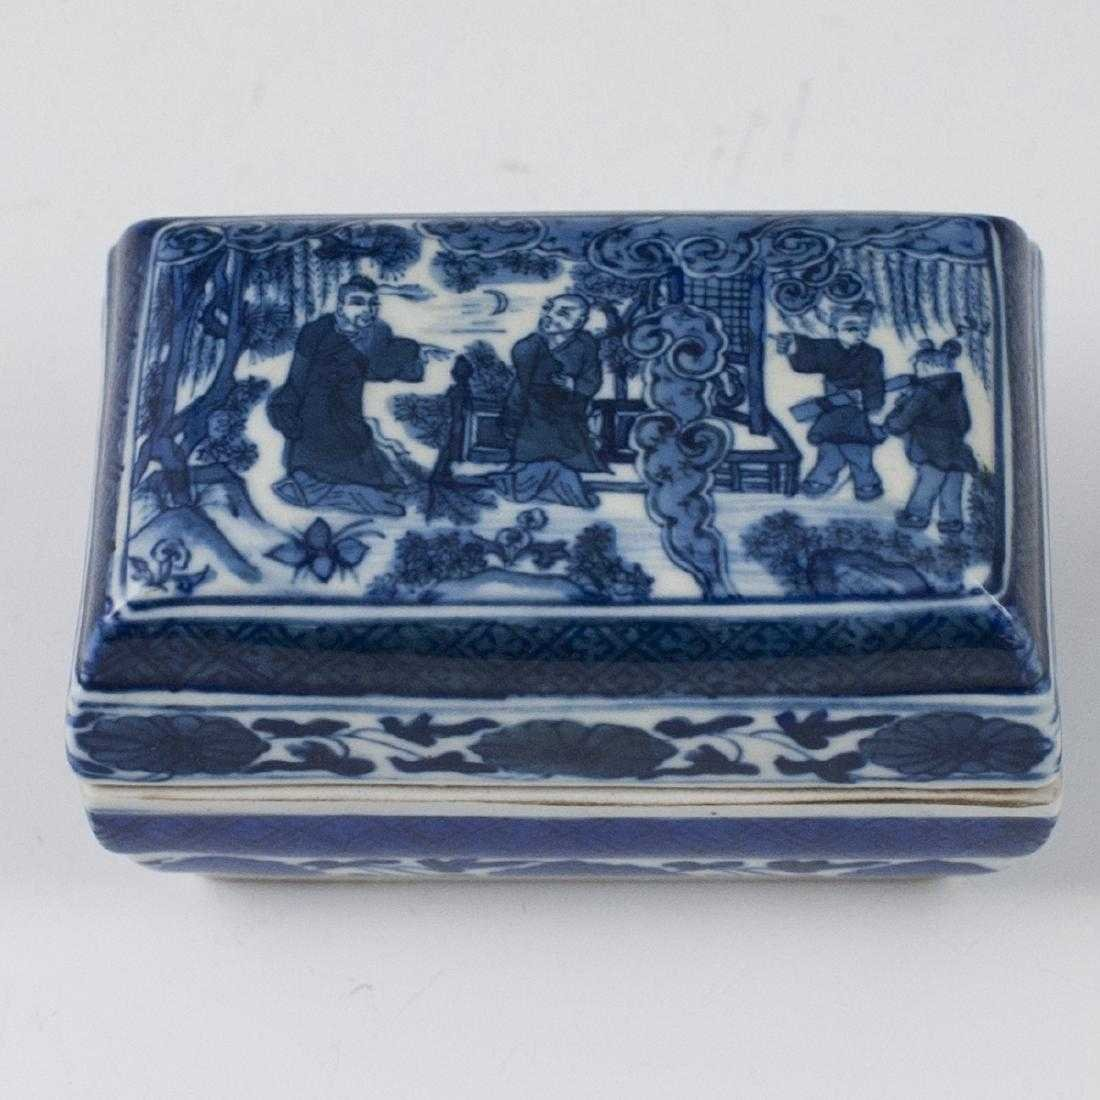 Antique Chinese Porcelain Box - 2